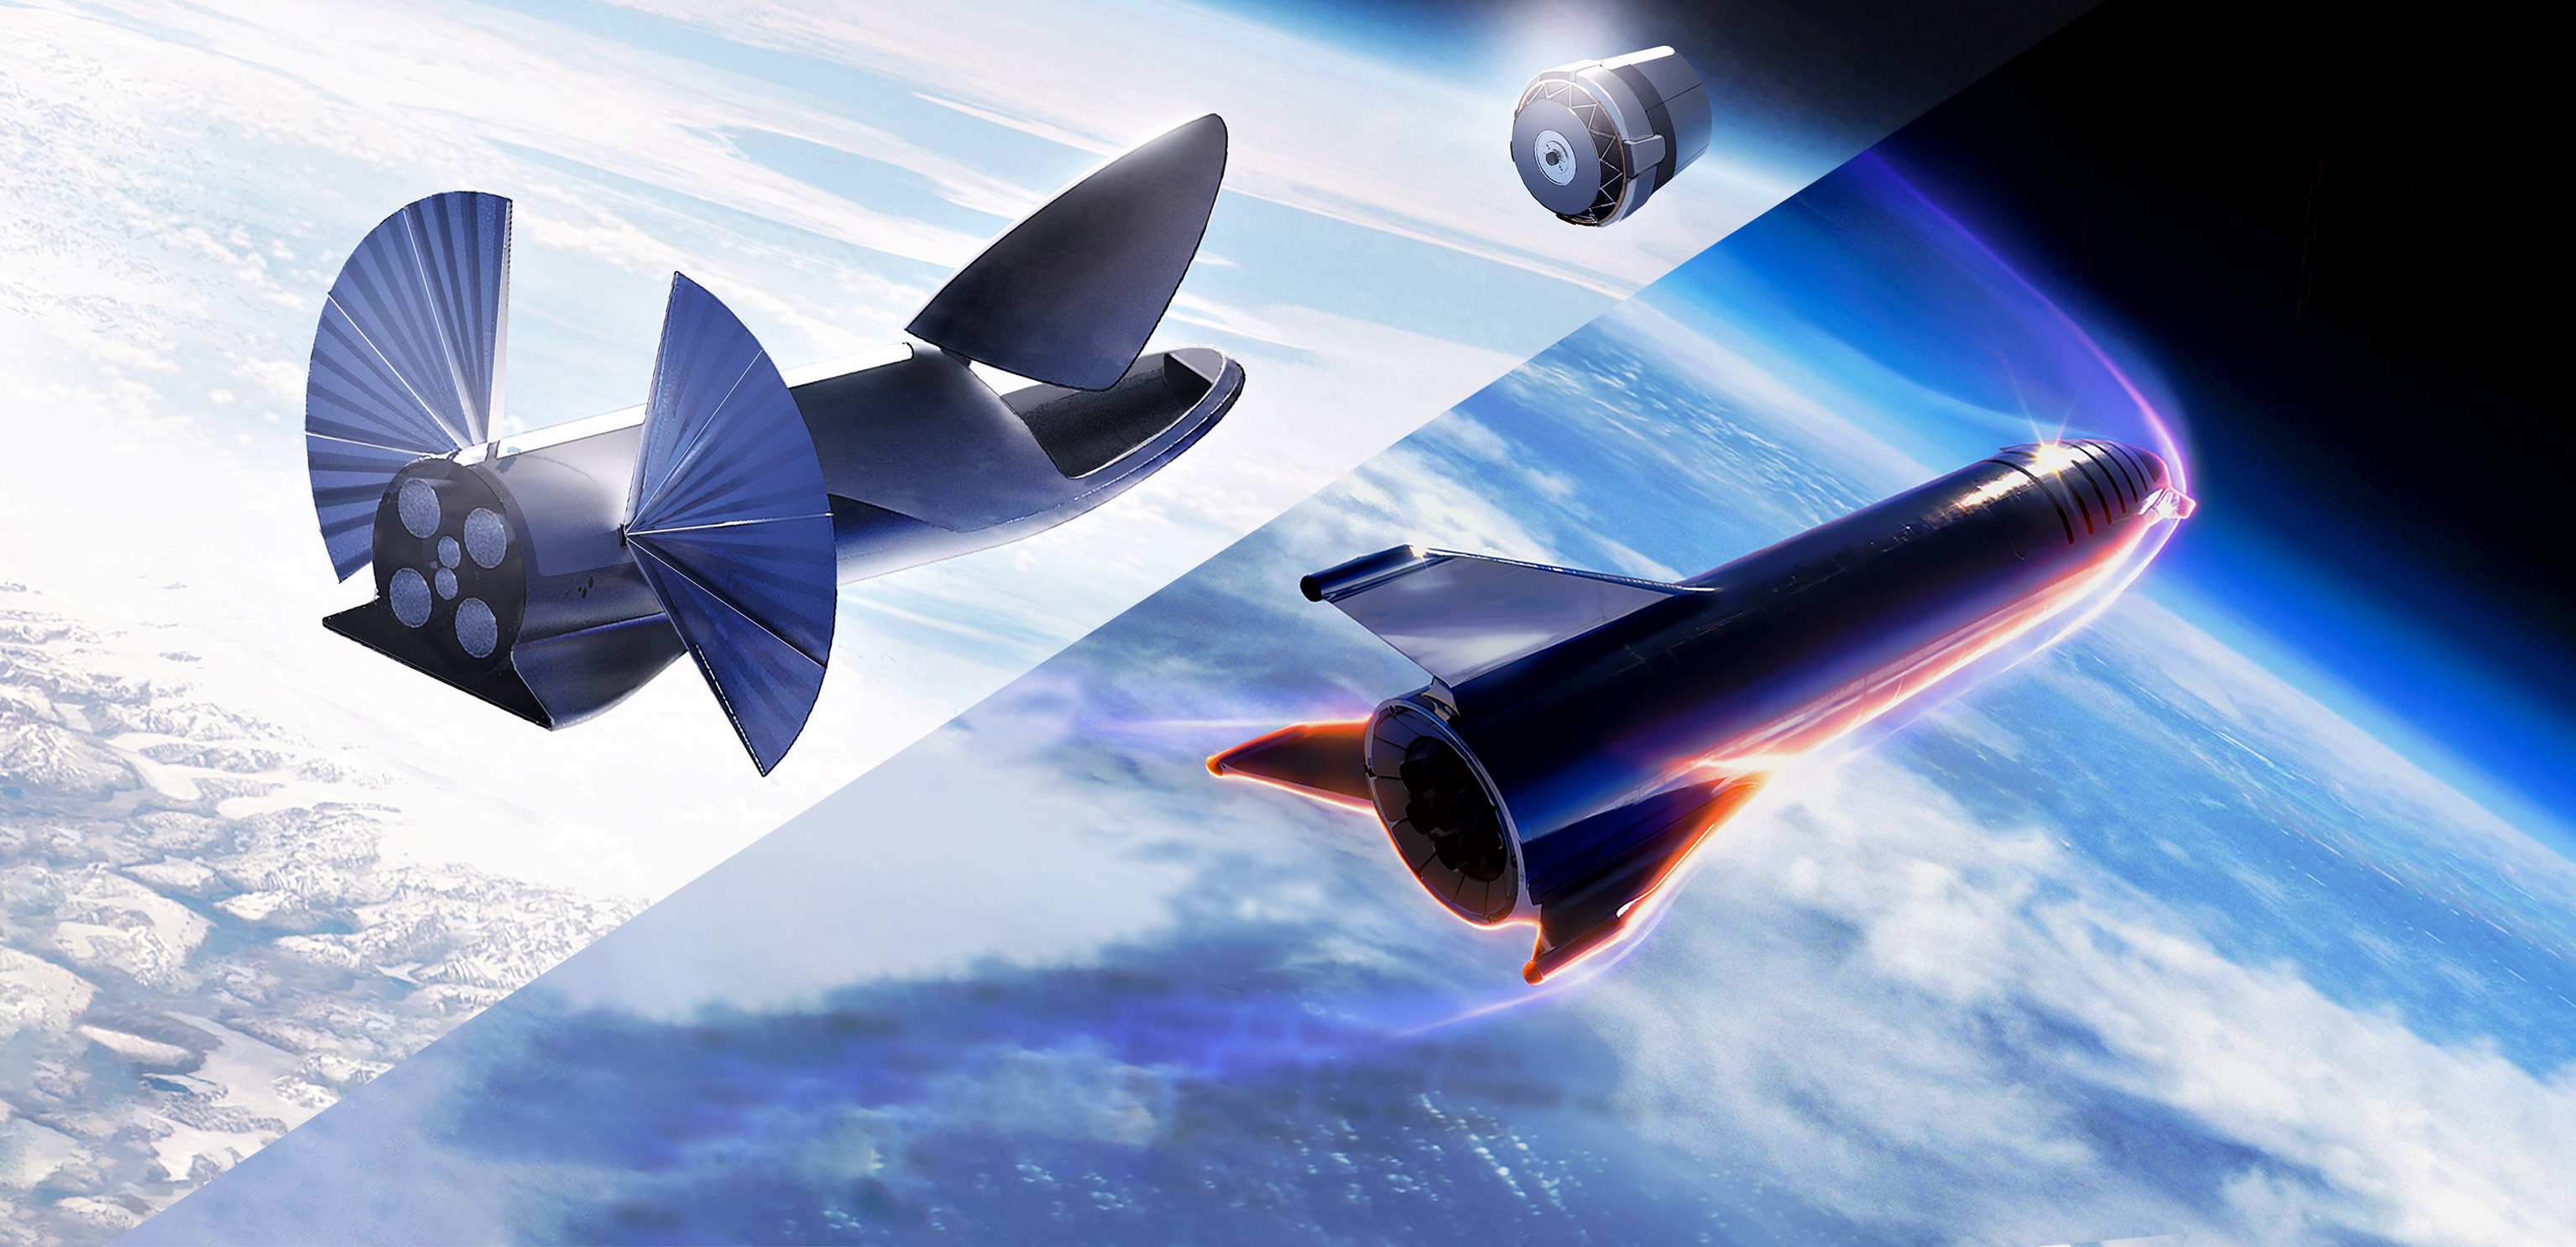 steel Starship reentry and cargo BFS 2017 (SpaceX) feature 1 (c)